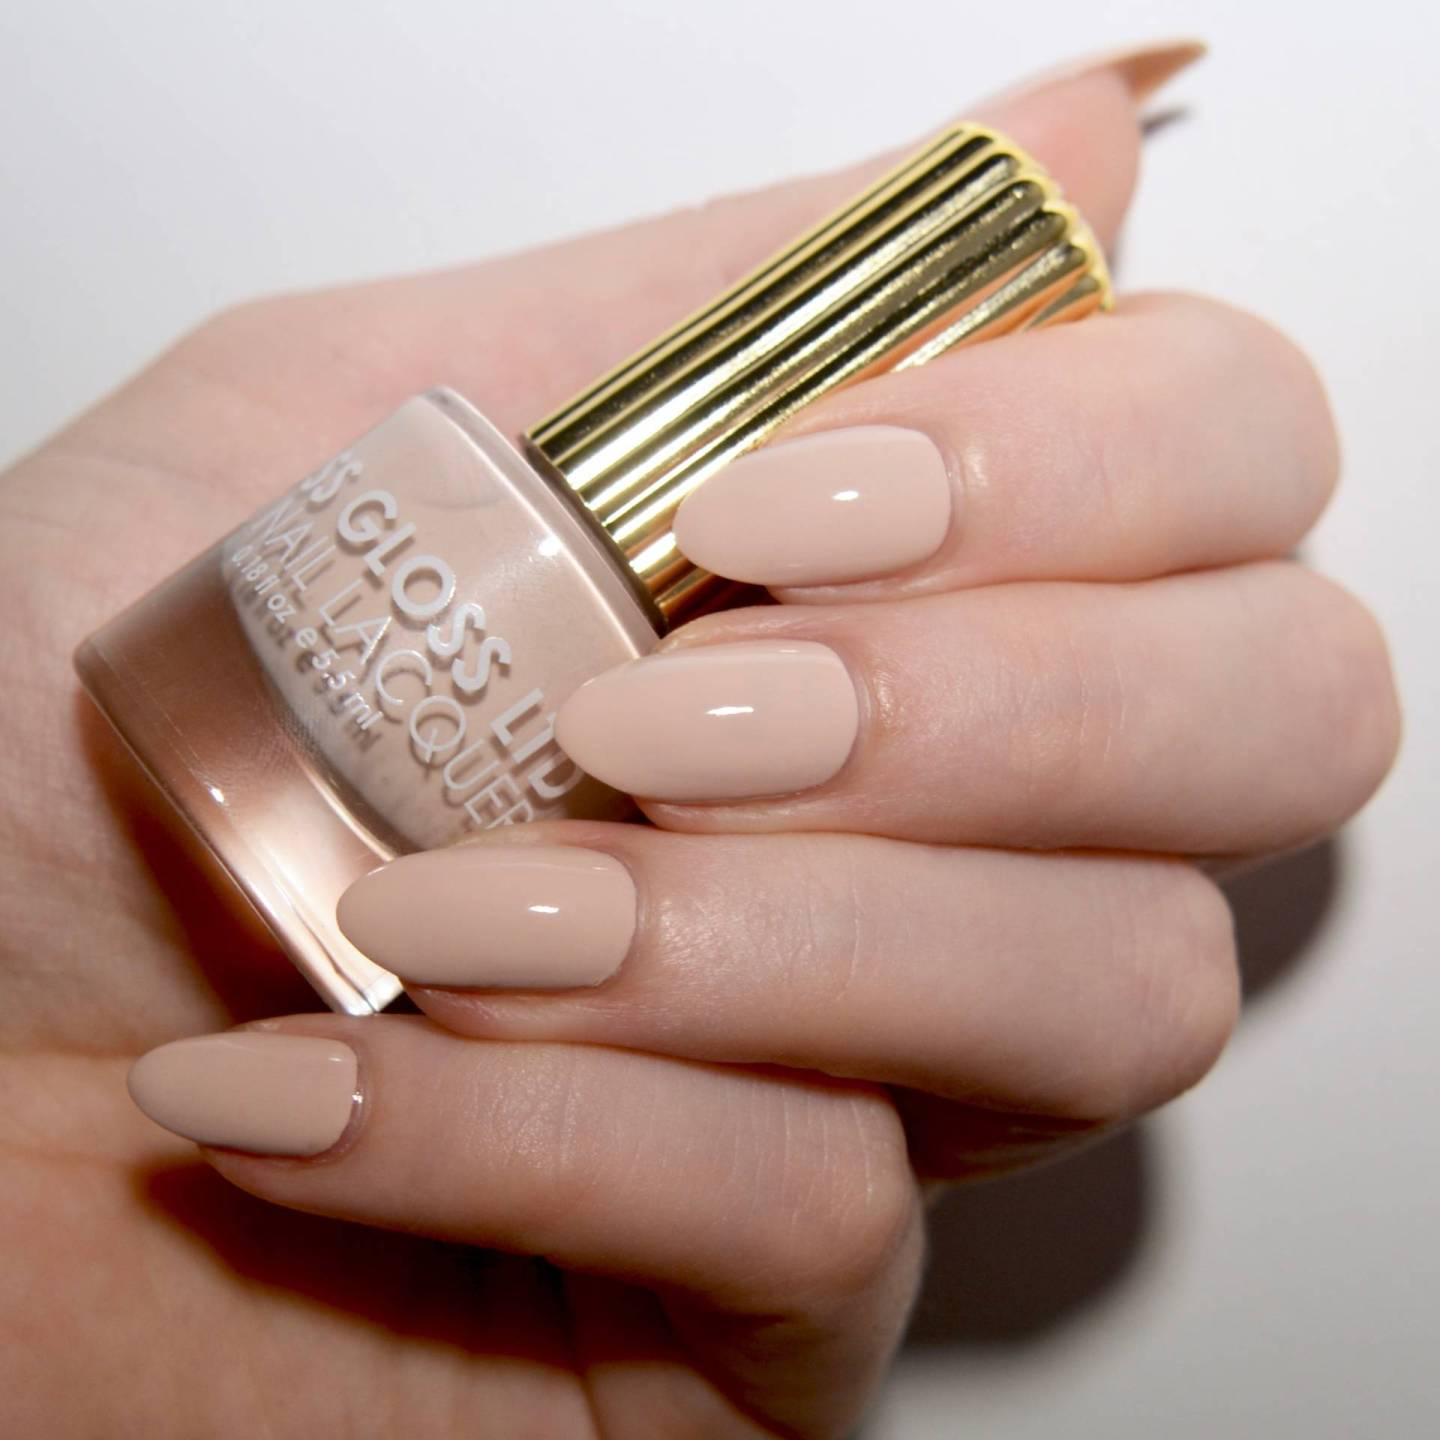 Floss Gloss Dinge - a pale peach toned nude nail varnish.